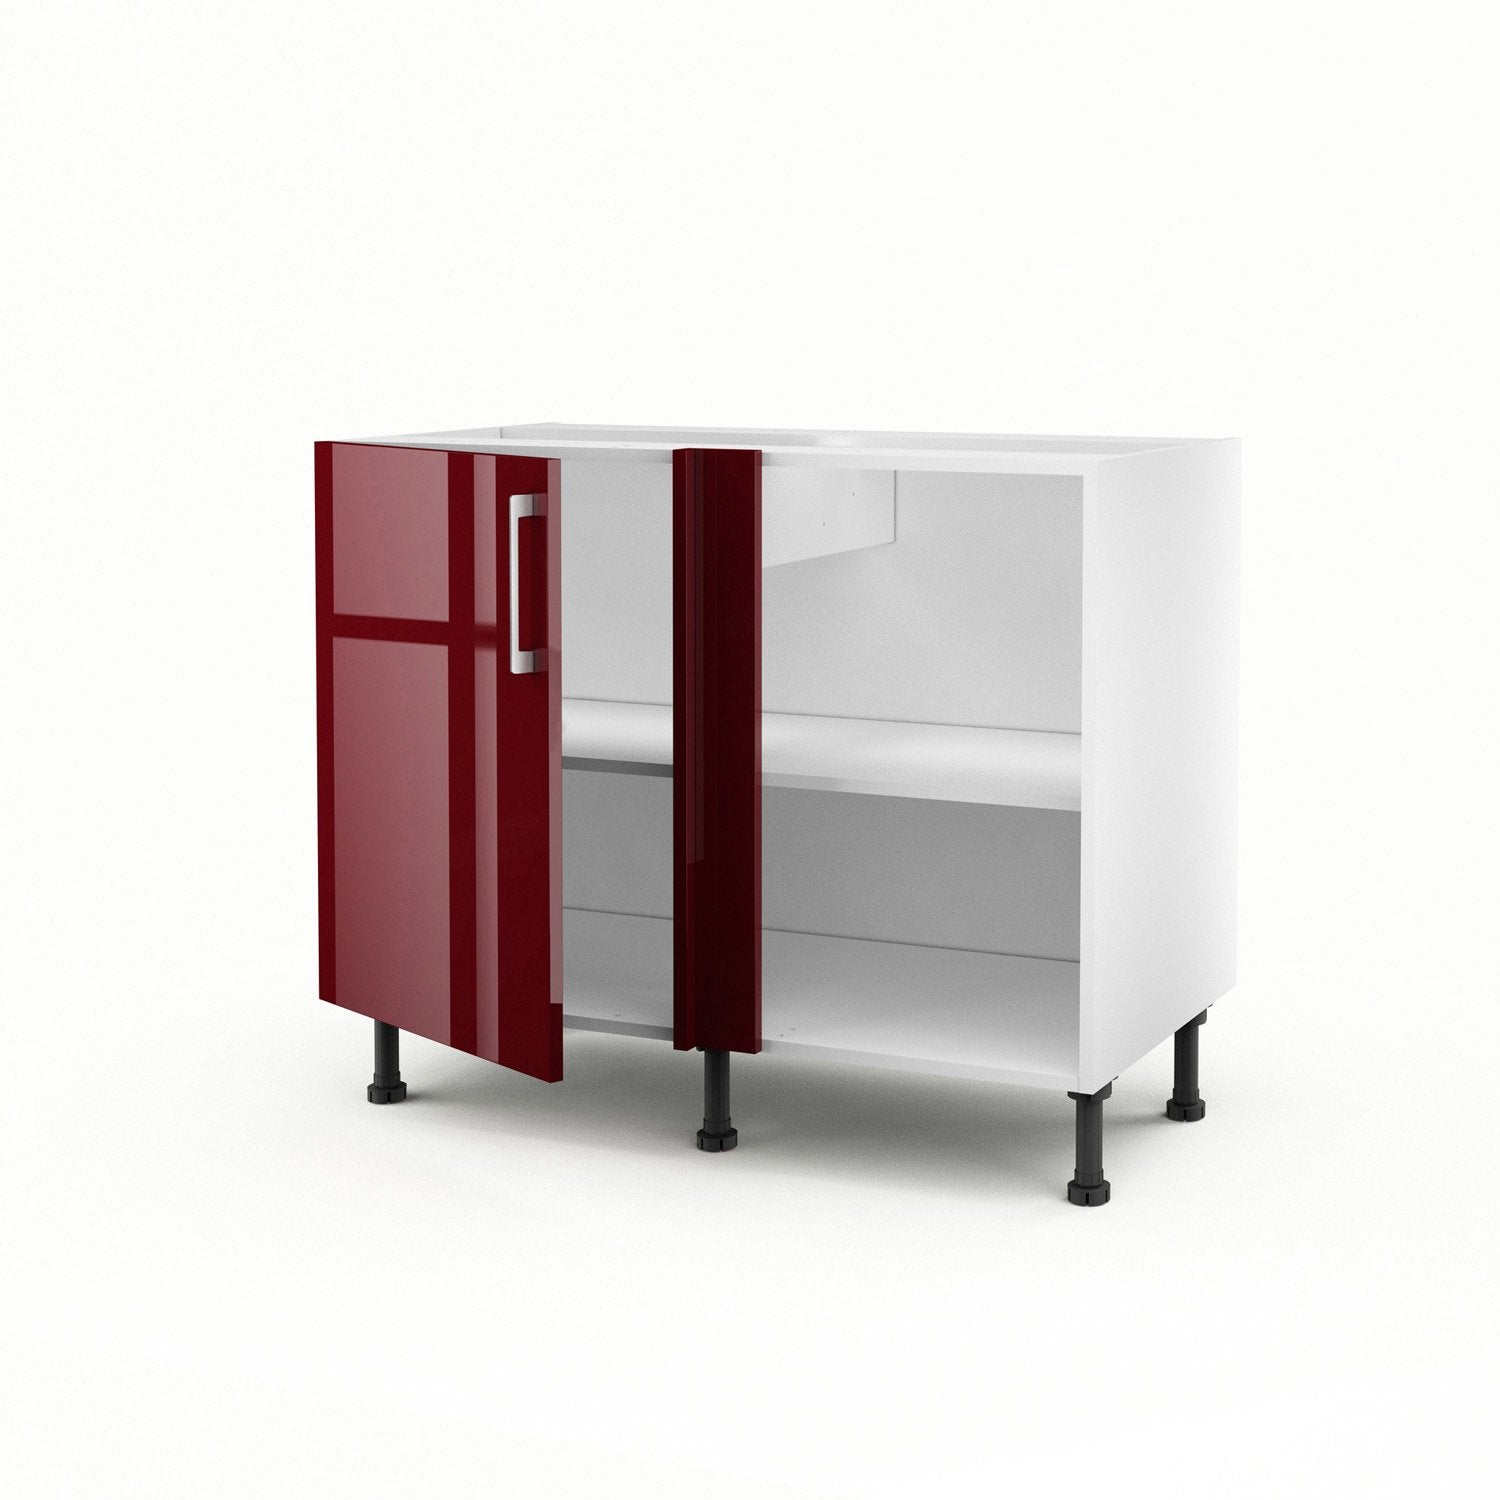 Meuble de cuisine bas dangle rouge 1 porte Griotte H70 x l100 x P